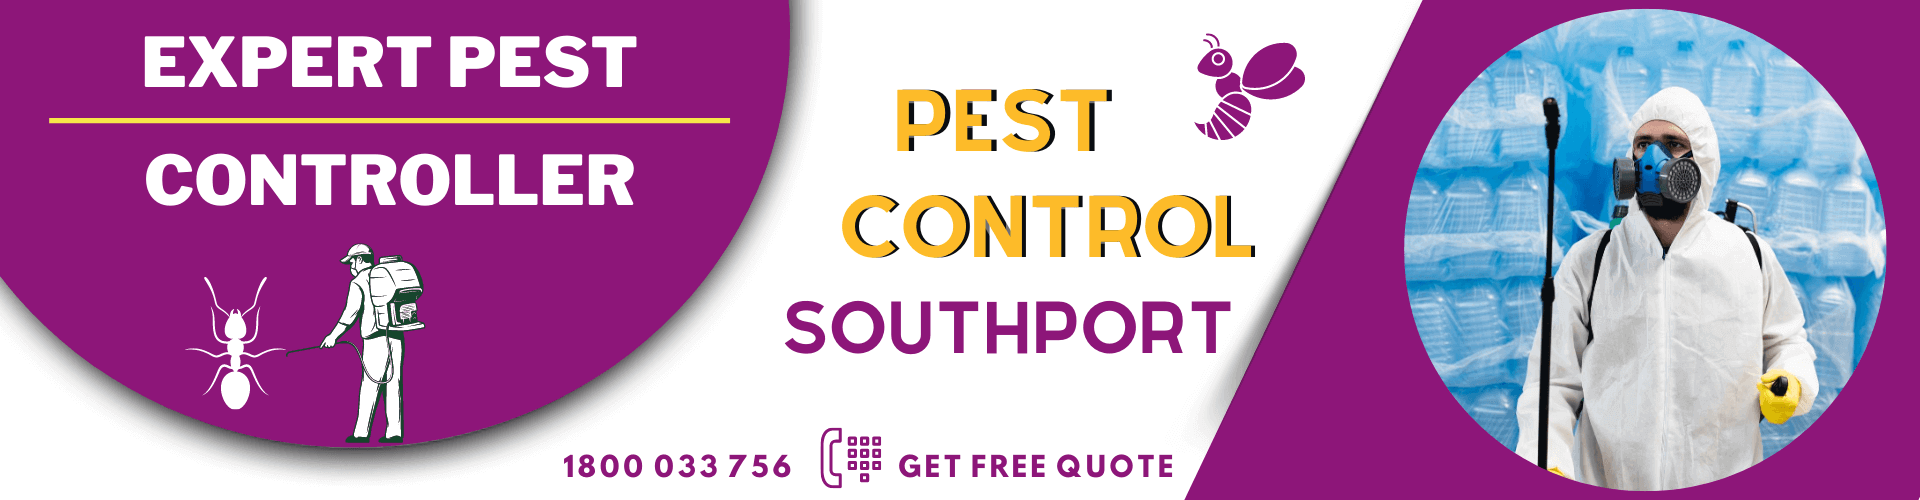 Pest Control southport